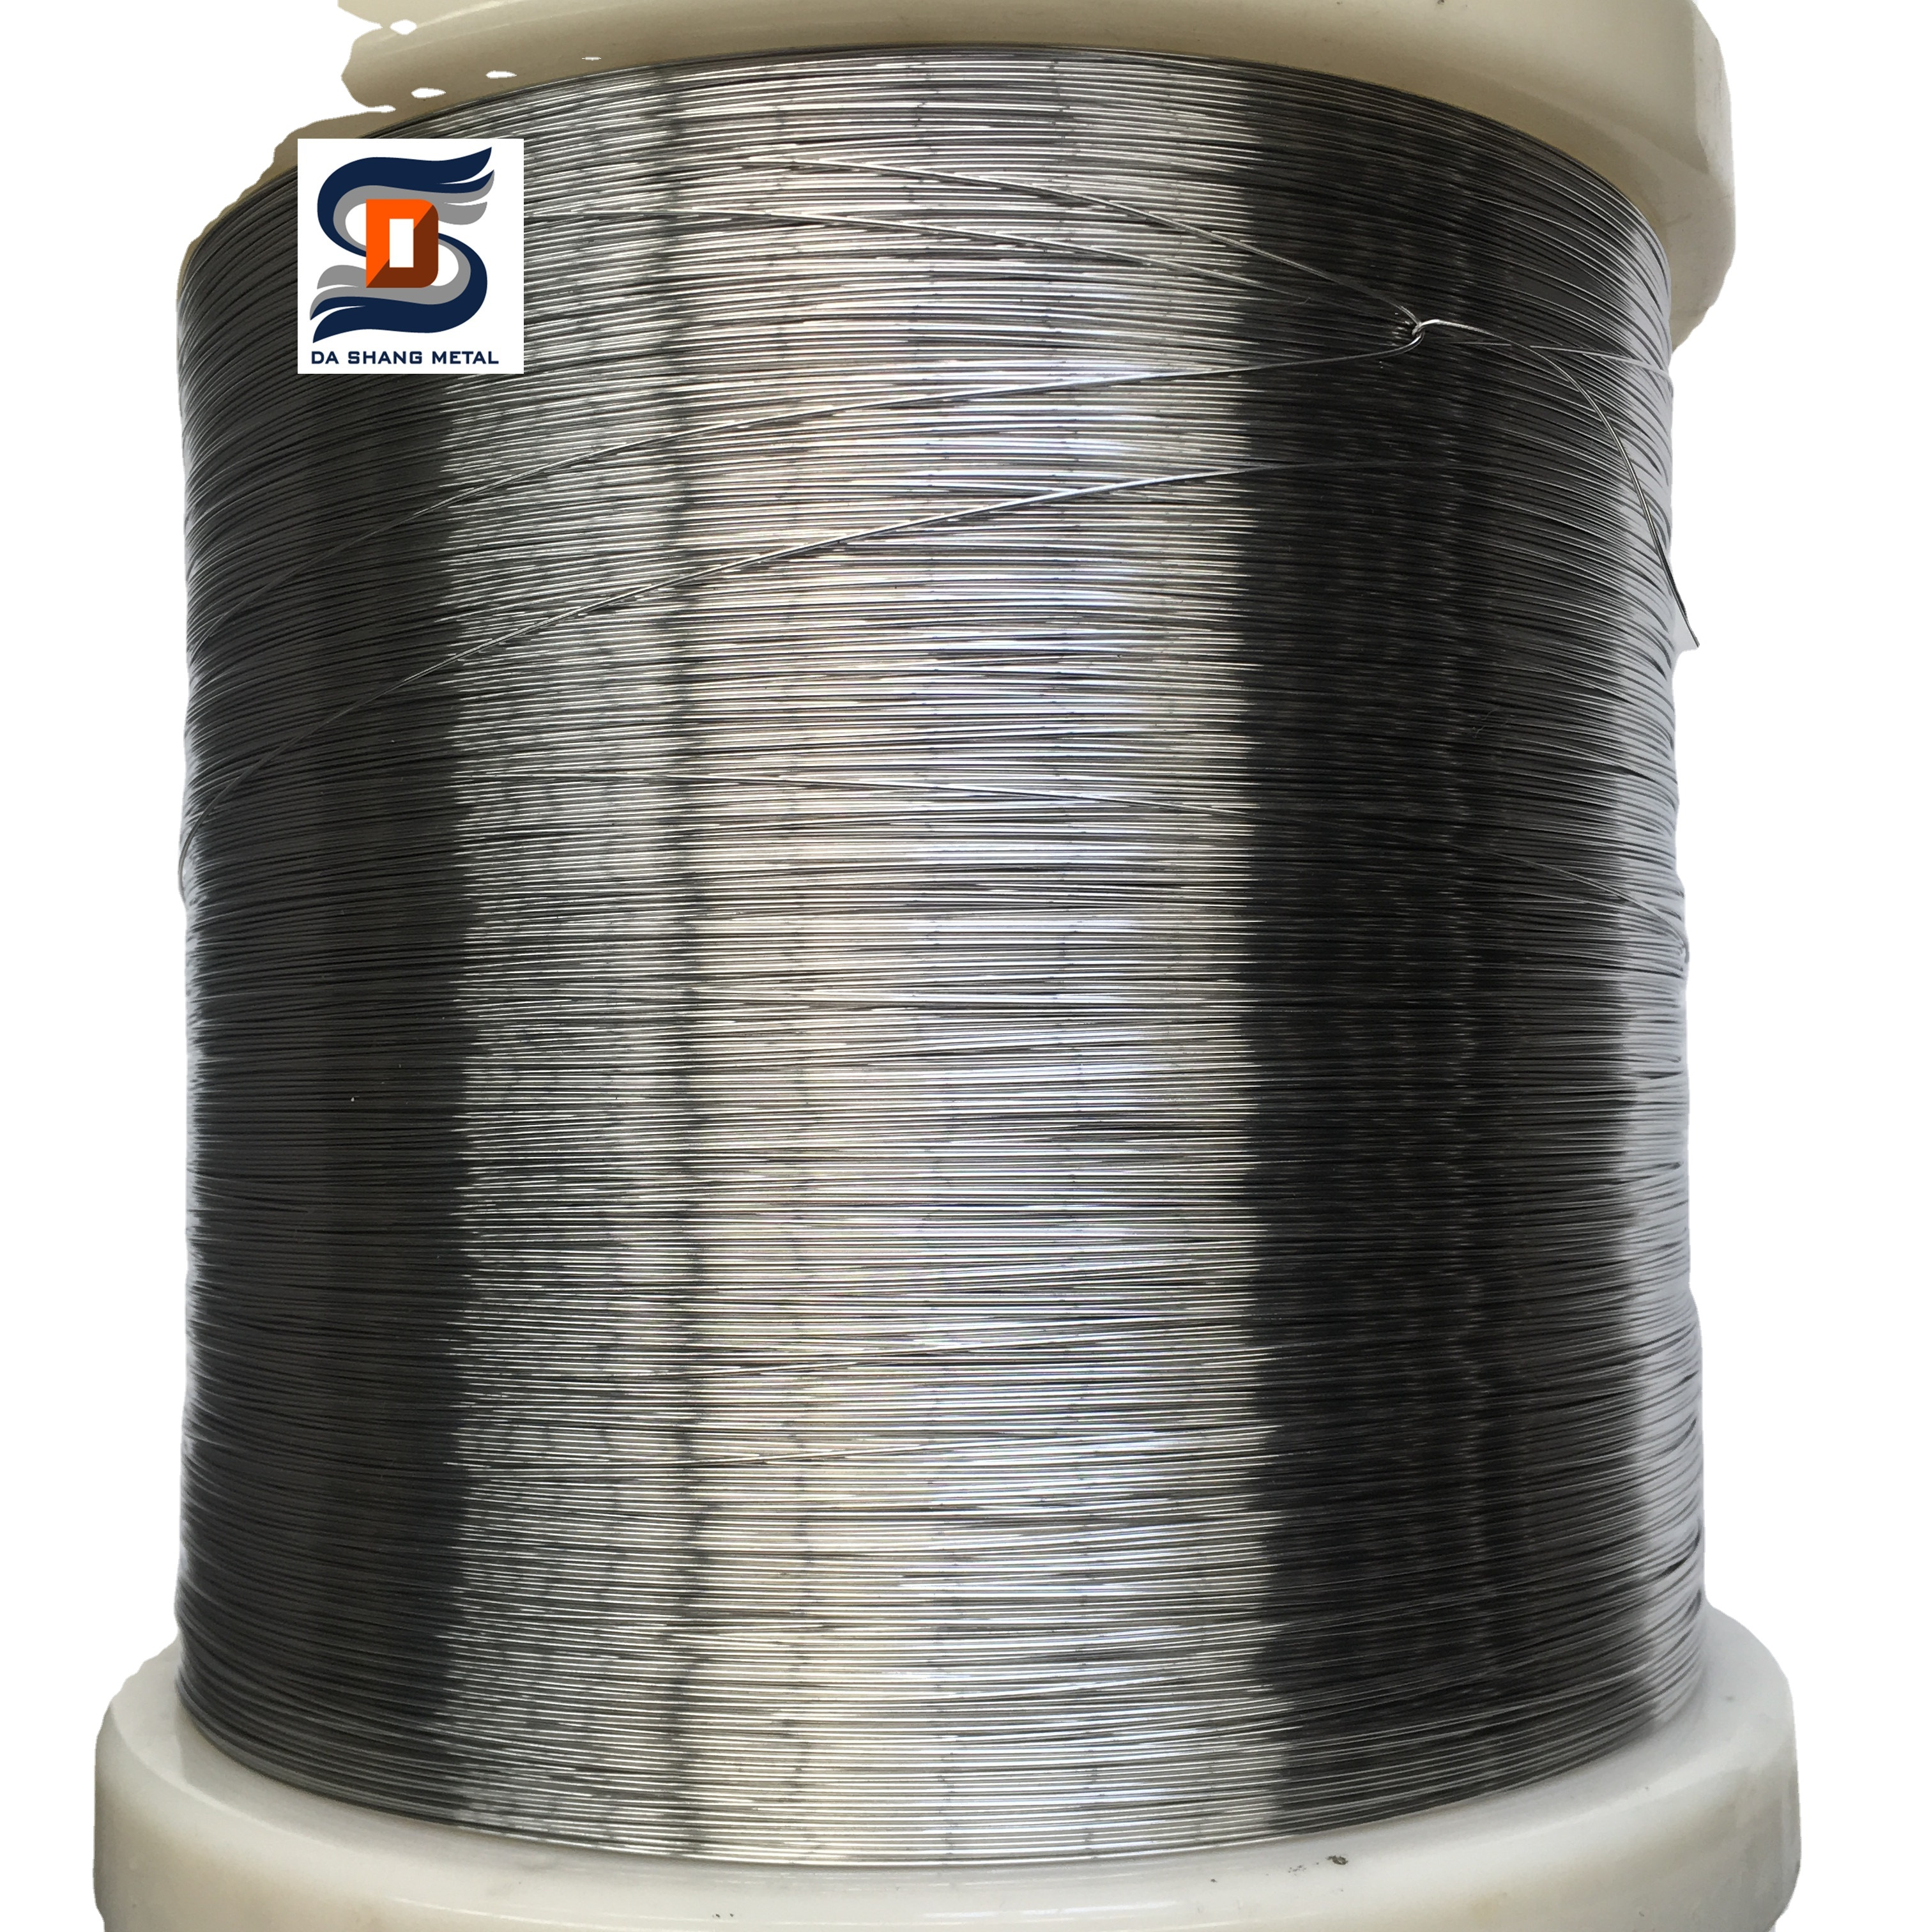 Stable tensile strength stainless steel wire for wire rope, wire mesh